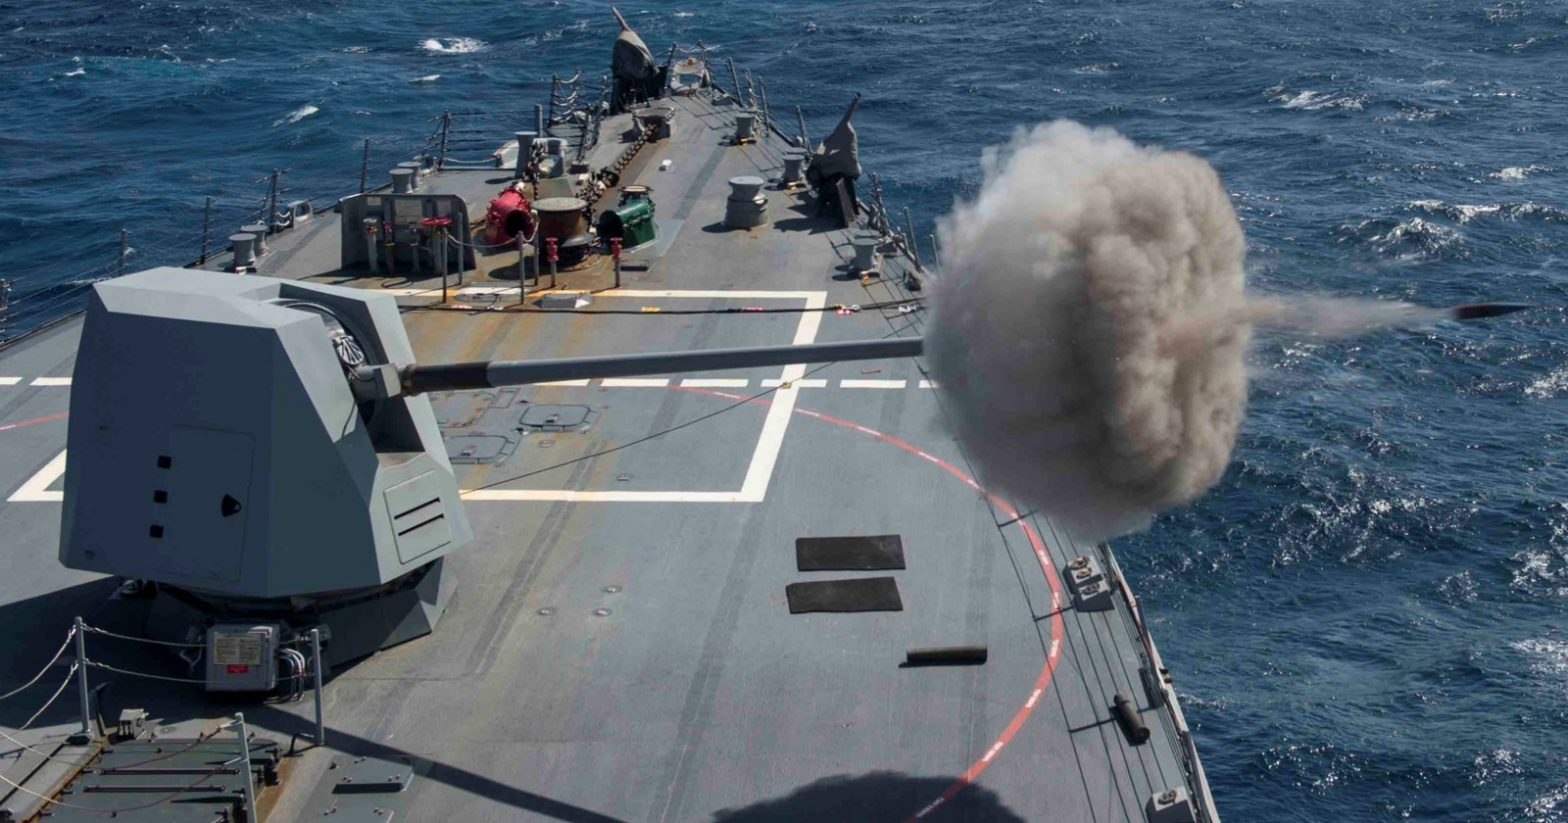 BAE Systems to provide U.S. Navy with modernized Mk 45 guns